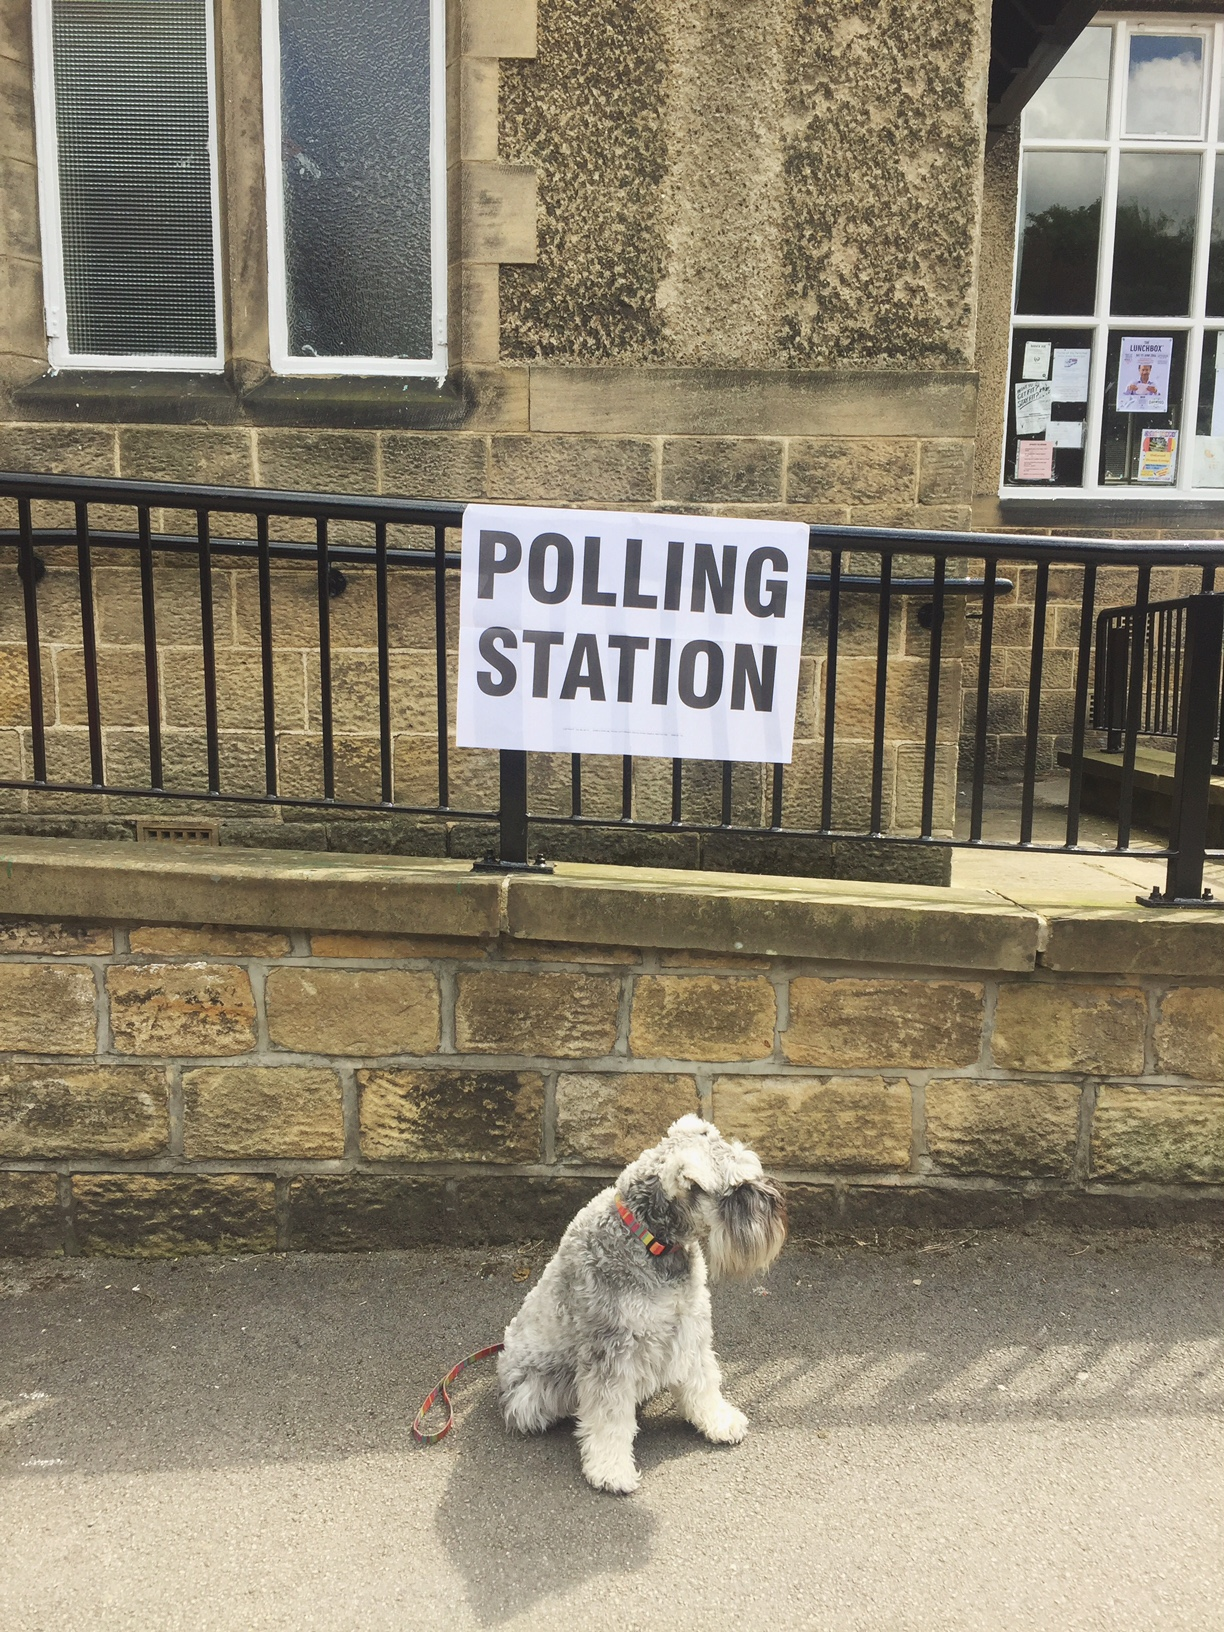 #dogsatpollingstations was my fave thing as always